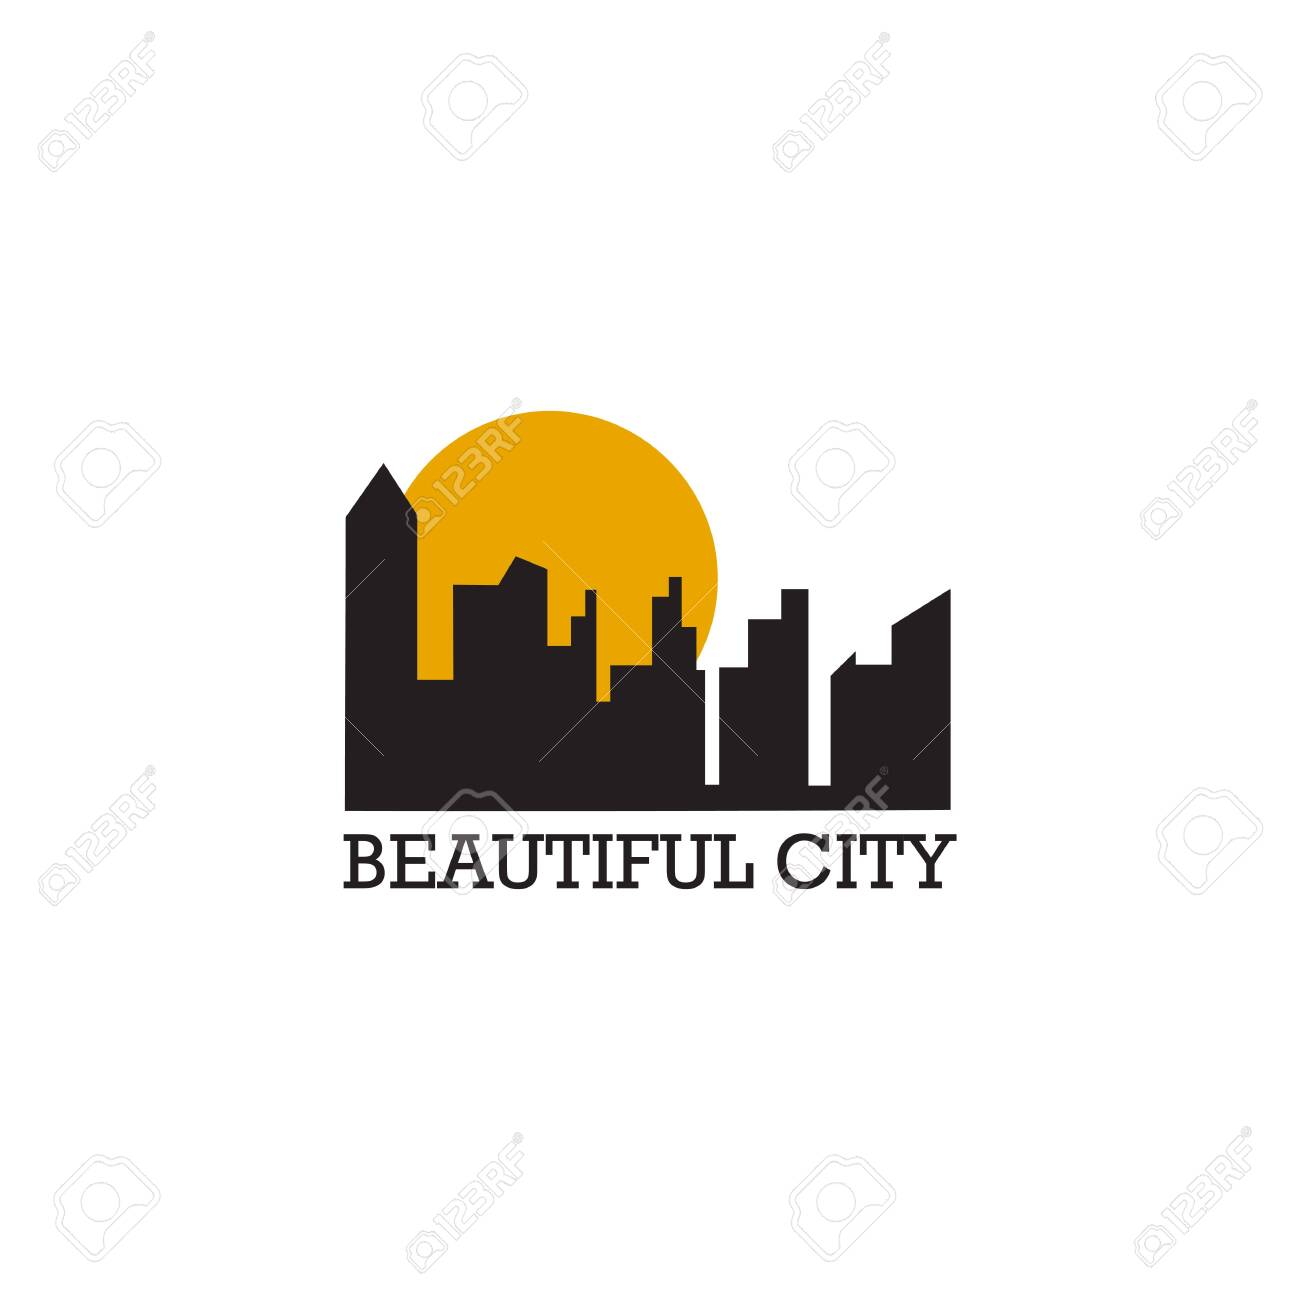 City Building Icon Logo Design Inspiration Vector Template Royalty Free Cliparts Vectors And Stock Illustration Image 136970940